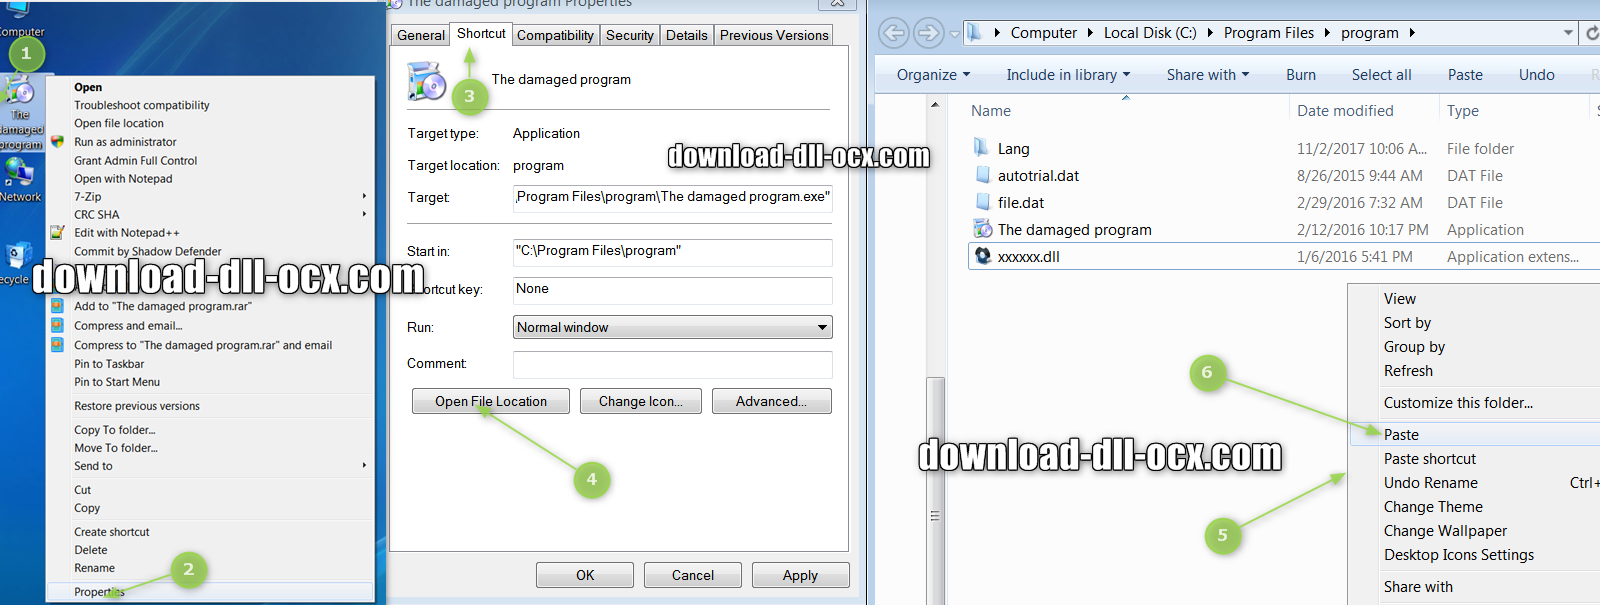 how to install ComponentMgr.dll file? for fix missing